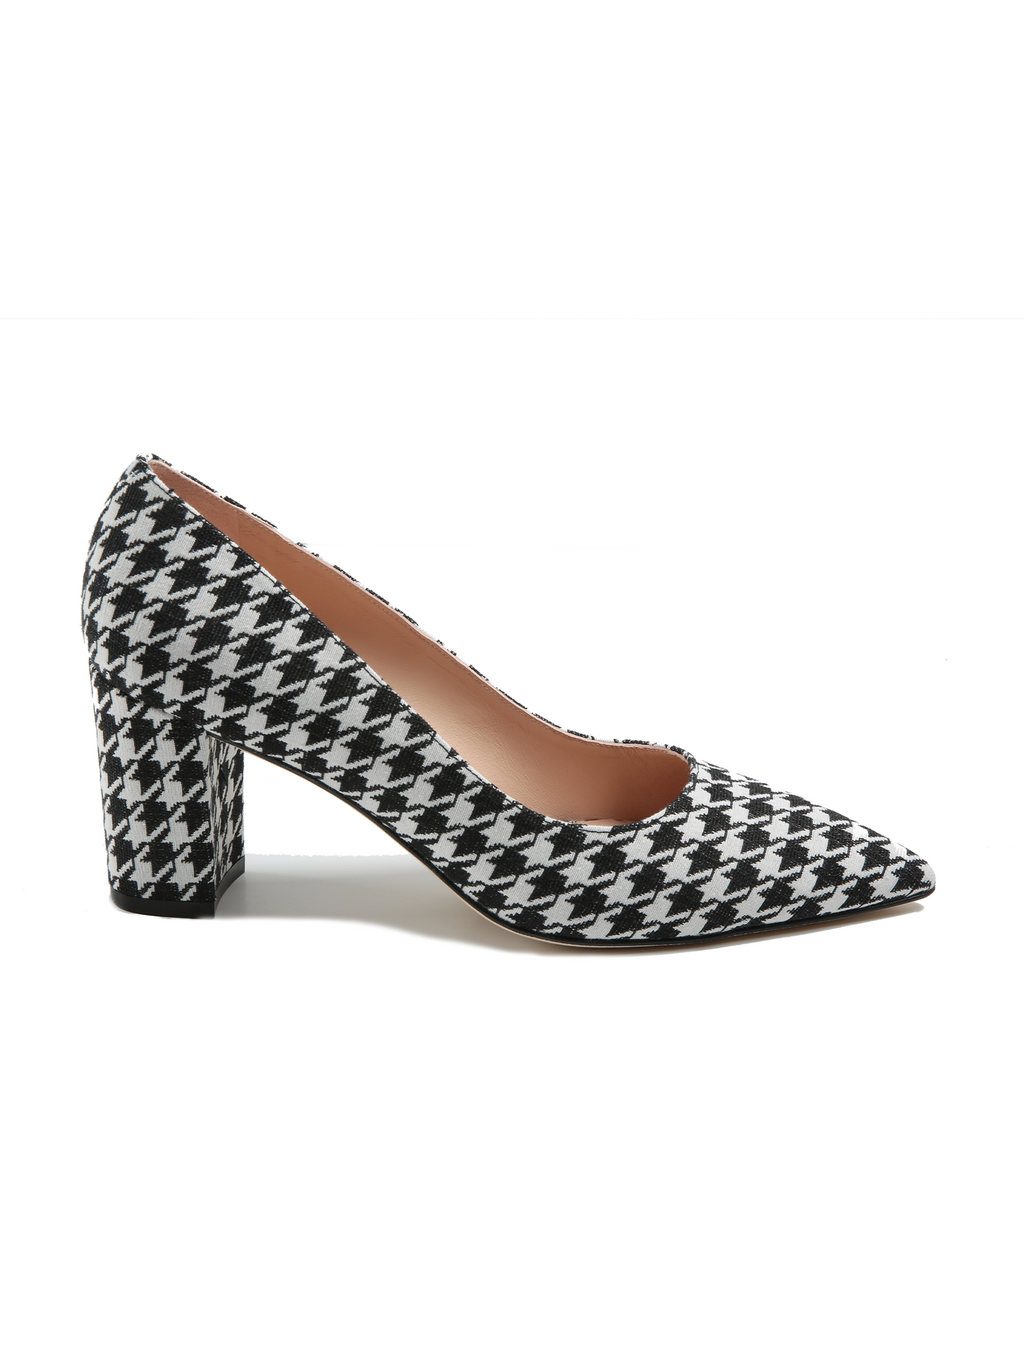 Stuart Weitzman Laney 75 Houndstooth Pump